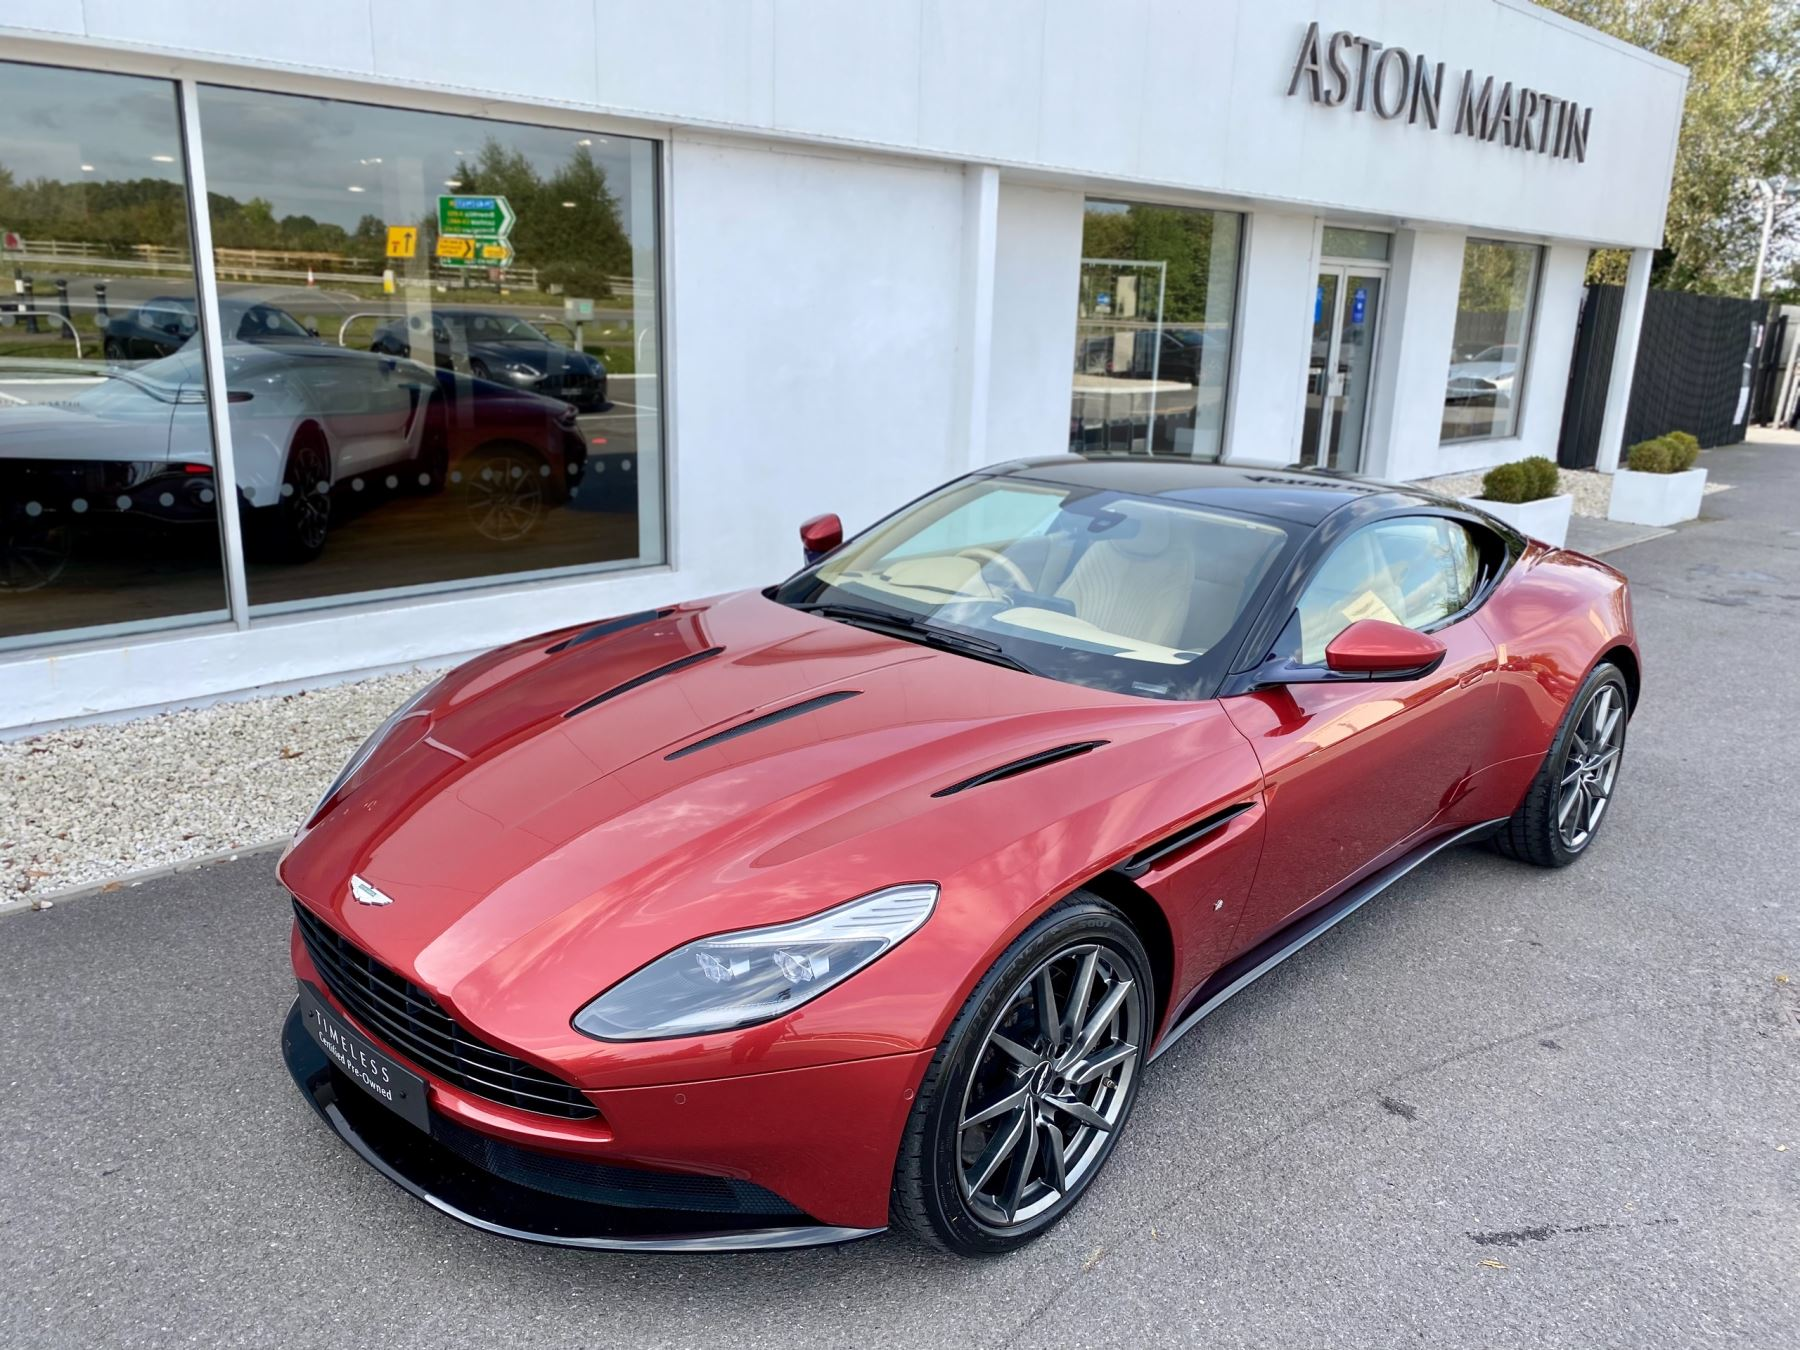 Aston Martin DB11 V12 Launch Edition Coupe. Bang & Olufsen Beosound Audio. Black brake calipers. Ventilated Seats image 10